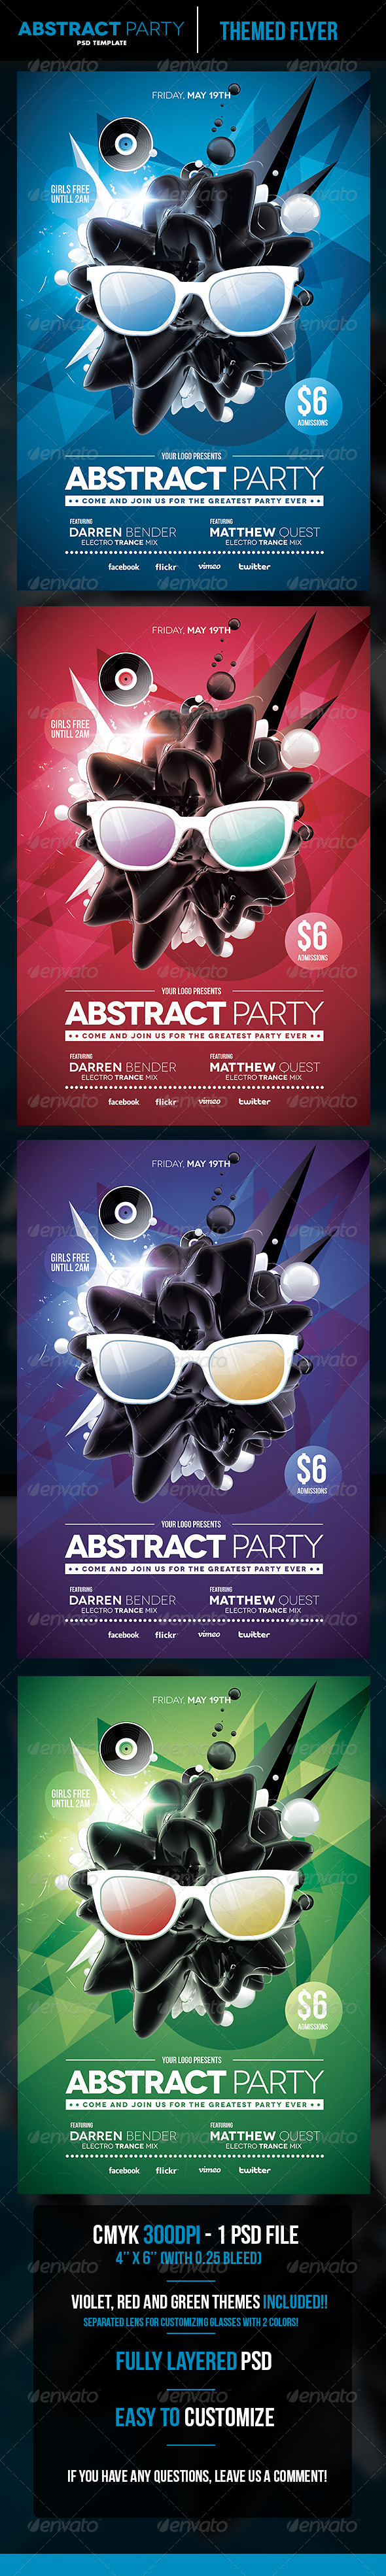 GraphicRiver Abstract Party Flyer Template 5376268